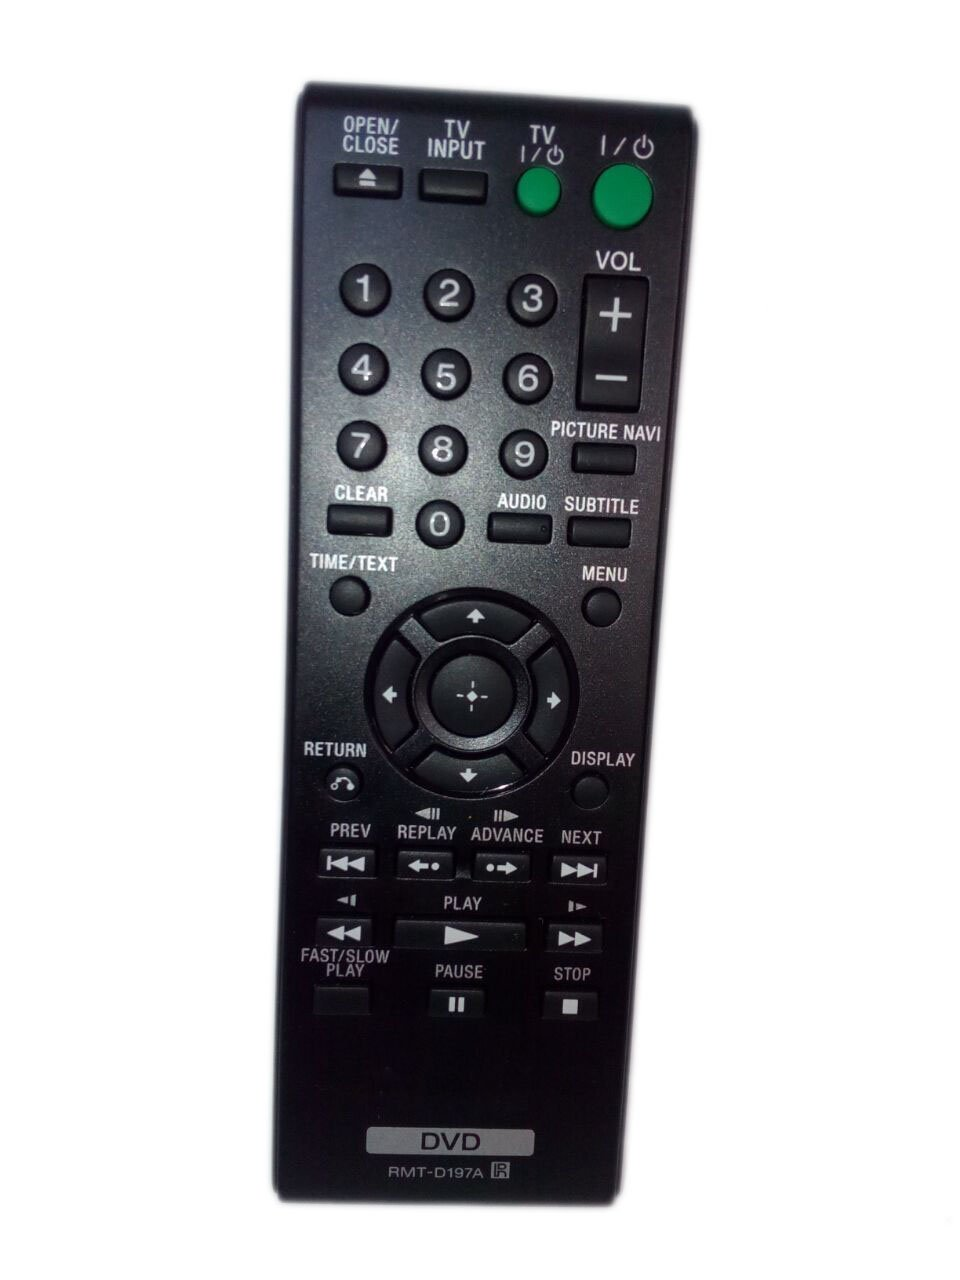 Amazon.com: Replaced Remote Control Compatible for Sony DVP-SR210P  RMT-D197A DVPSR120 DVPSR310P DVP-SR510H CD DVD Player: Home Audio & Theater